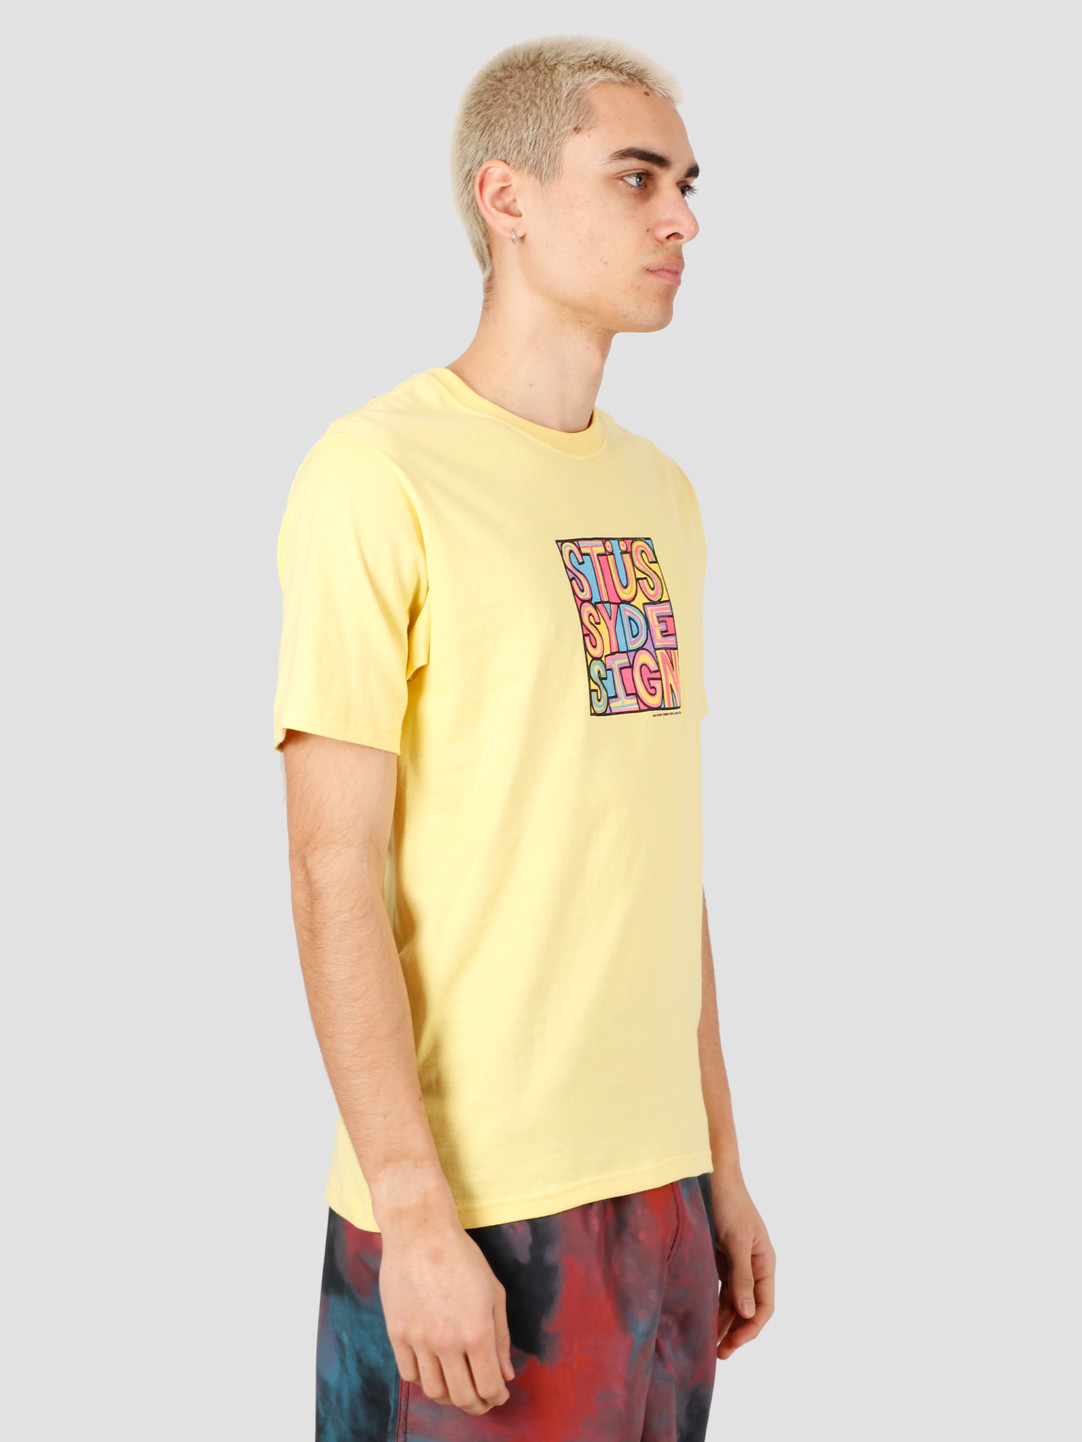 Stussy Stussy Clyde Tee Yellow 1904503